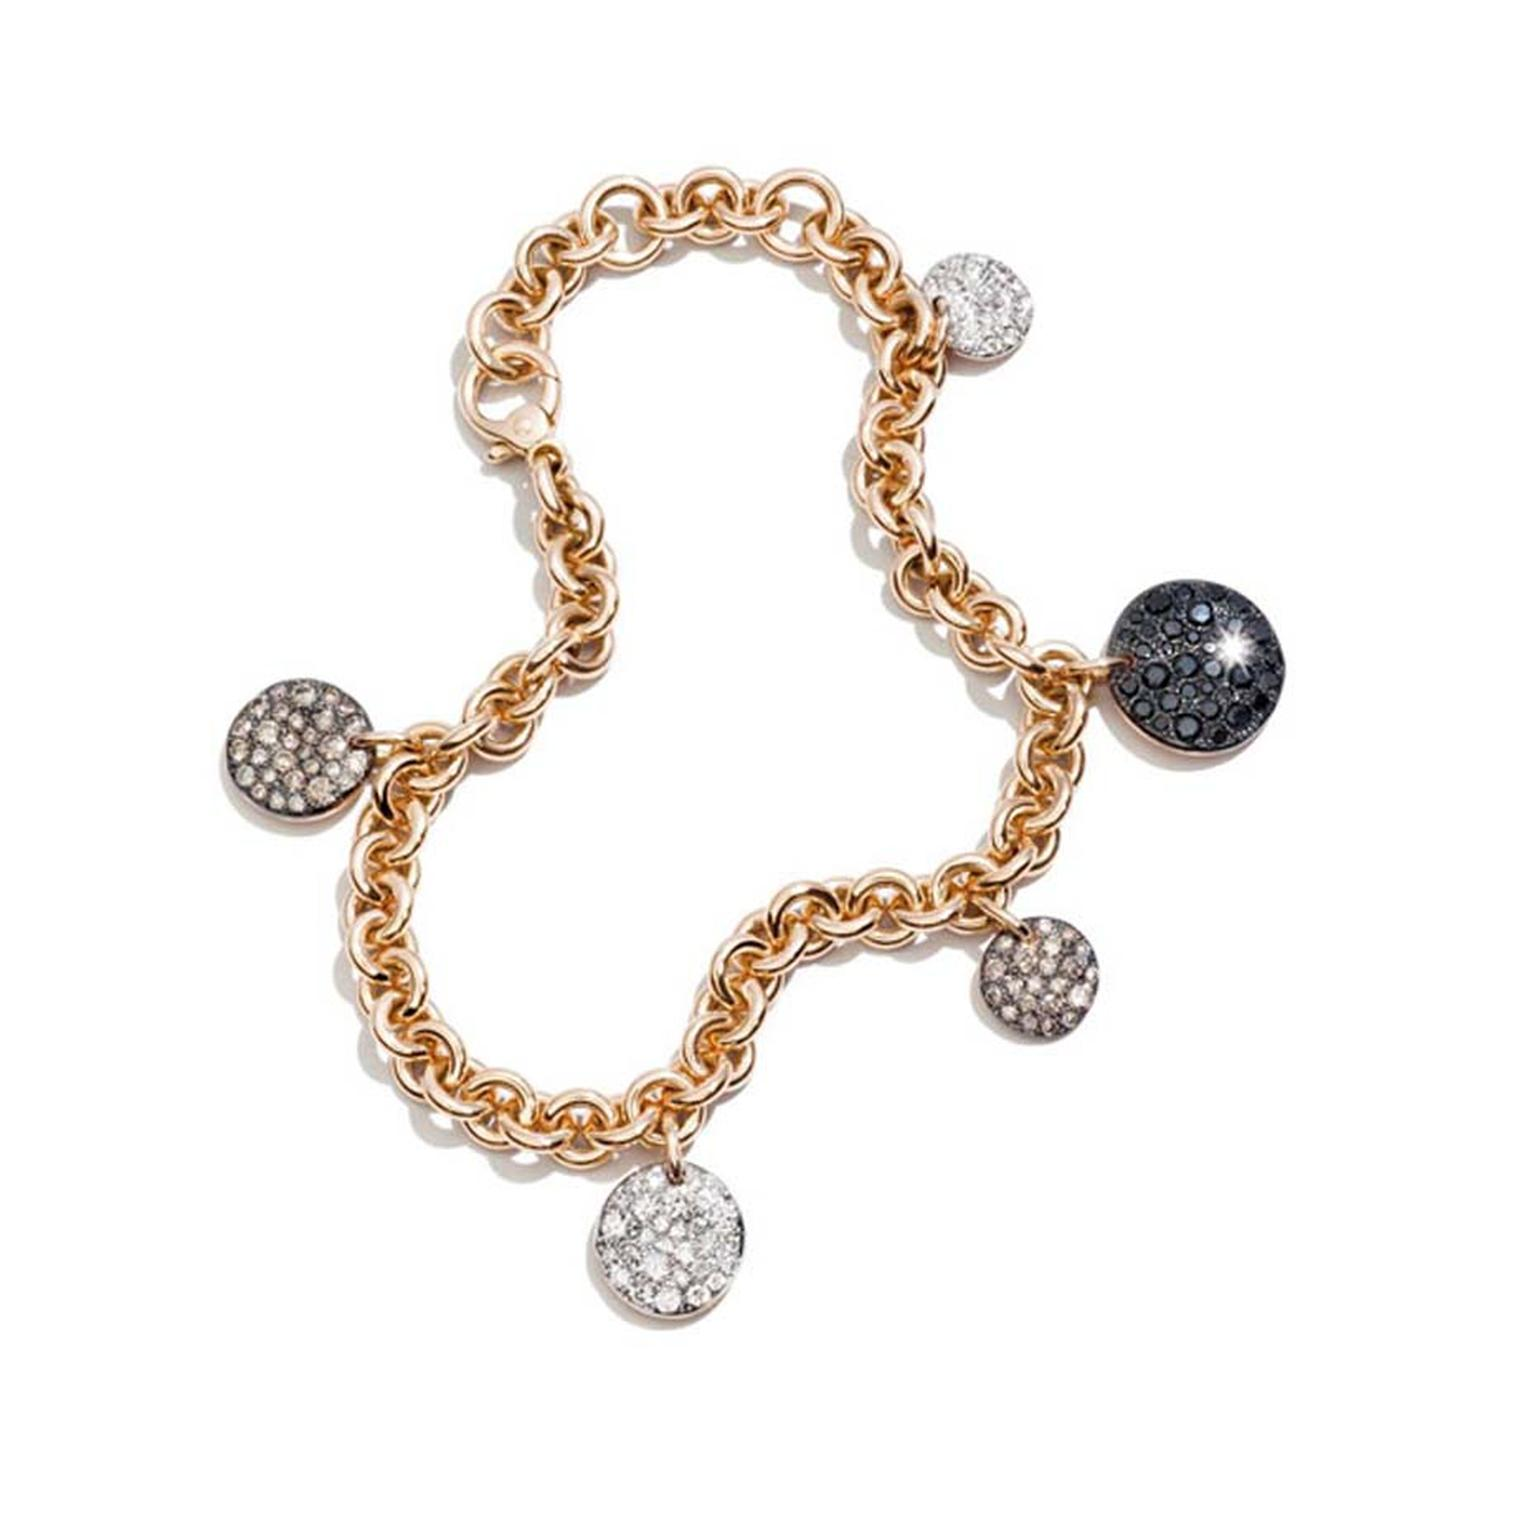 A special gift this Mother's Day - a piece of Pomellato jewellery. Rose gold and diamond Sabbia charm bracelet with discs of snow-set white, black and brown diamonds.